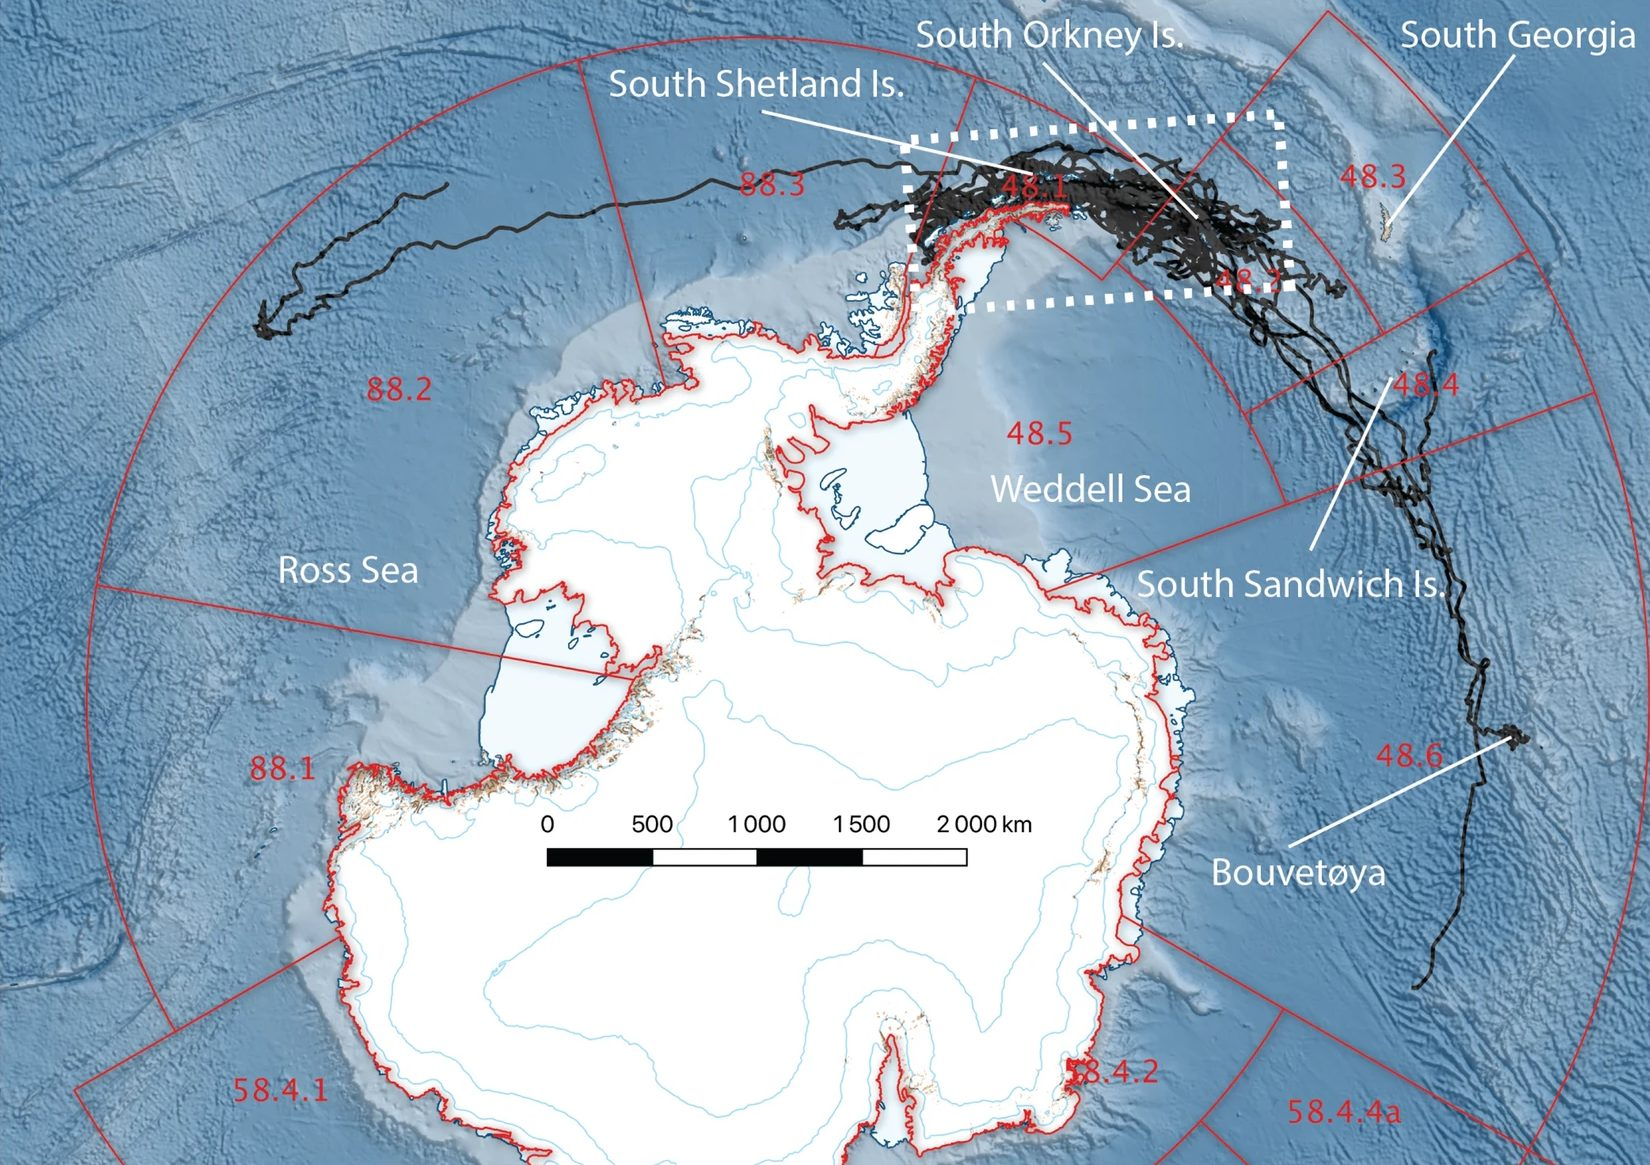 Argos satellite telemetry tracks from the 20 male Antarctic fur seals between 1st January and 8th December 2016 tagged at Powell Island, South Orkney Islands. Two animals ranged as far as the eastern Ross Sea and east of Bouvetøya in the Atlantic, though most remained within the Scotia Sea and western Antarctic Peninsula area. Key krill fishing grounds are shown as the white dashed box; red boxes are CCAMLR Subareas. From [Lowther et al., 2020]